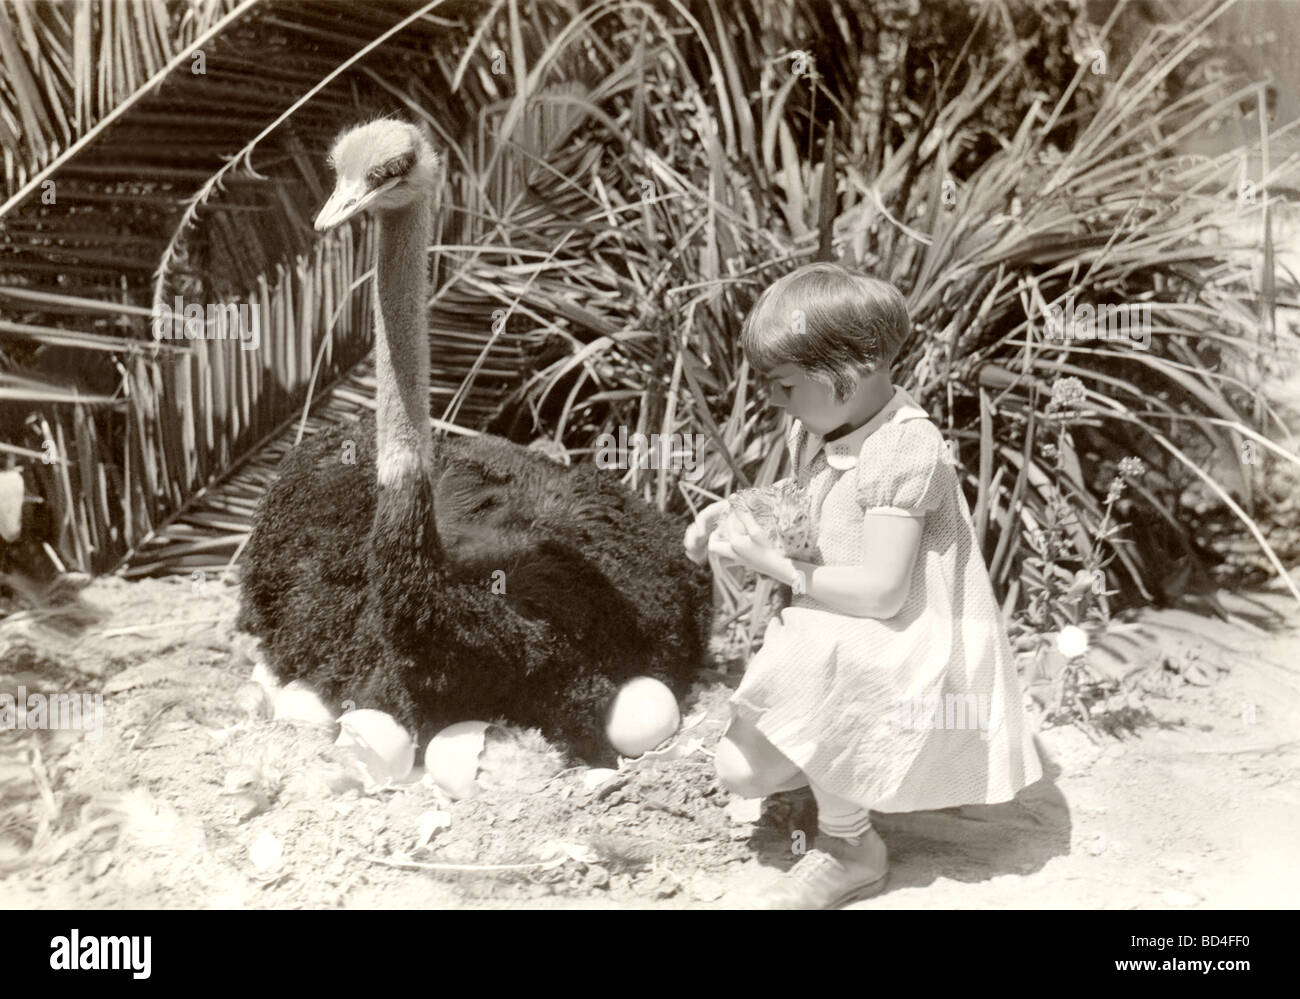 Girl & Hatching Ostrich Egg Stock Photo: 25300884 - Alamy